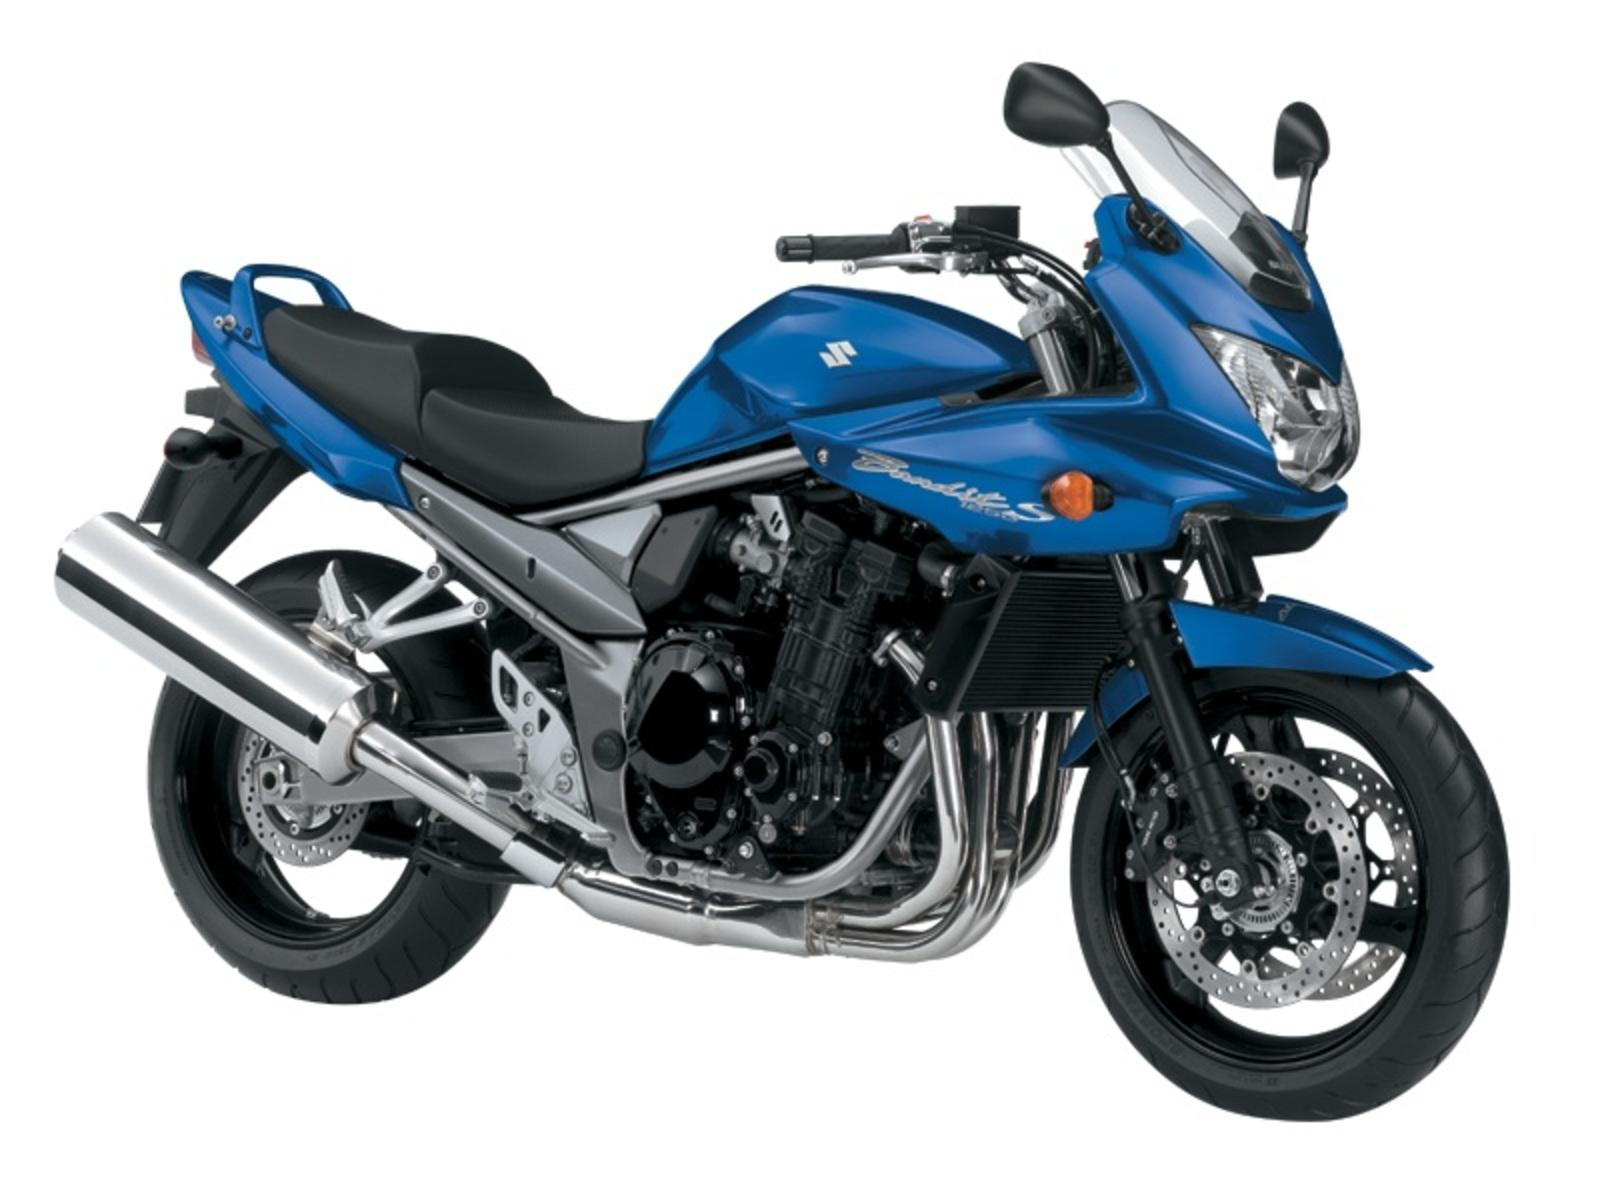 2013 suzuki bandit 1250sa abs review top speed. Black Bedroom Furniture Sets. Home Design Ideas